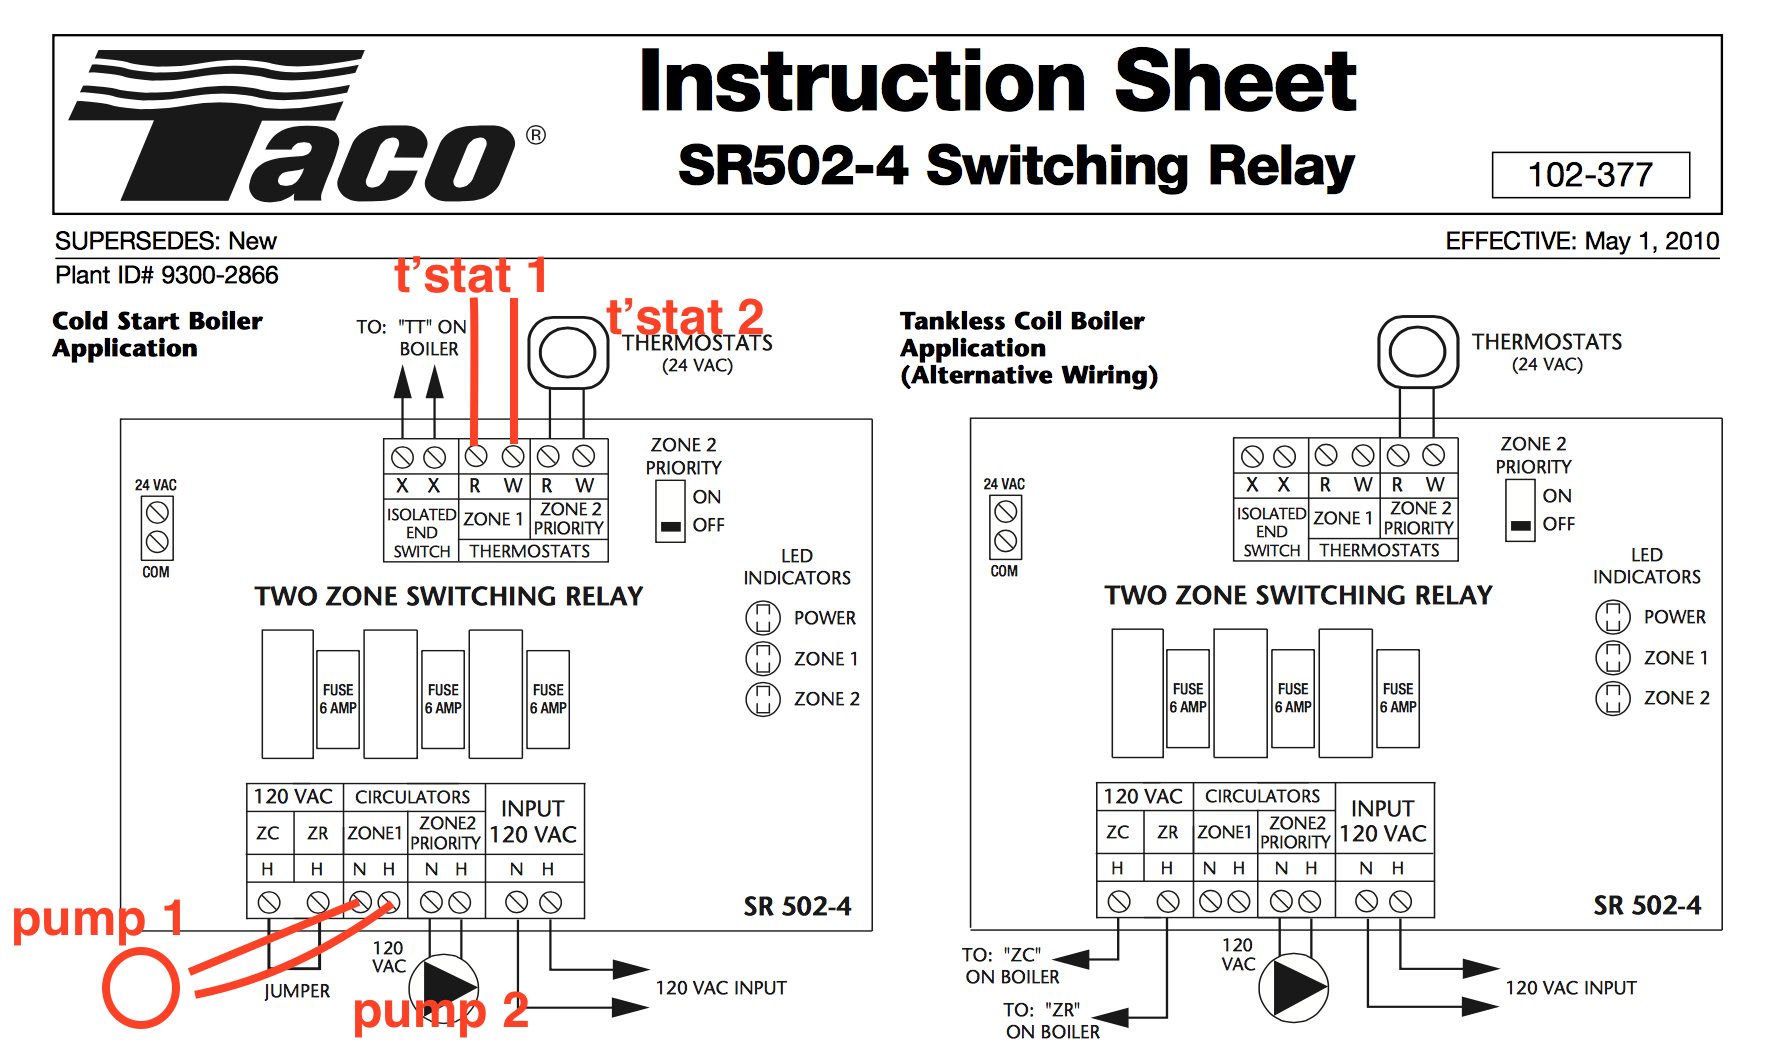 circulator pump relay wiring - honeywell r845a — heating help: the, Wiring diagram